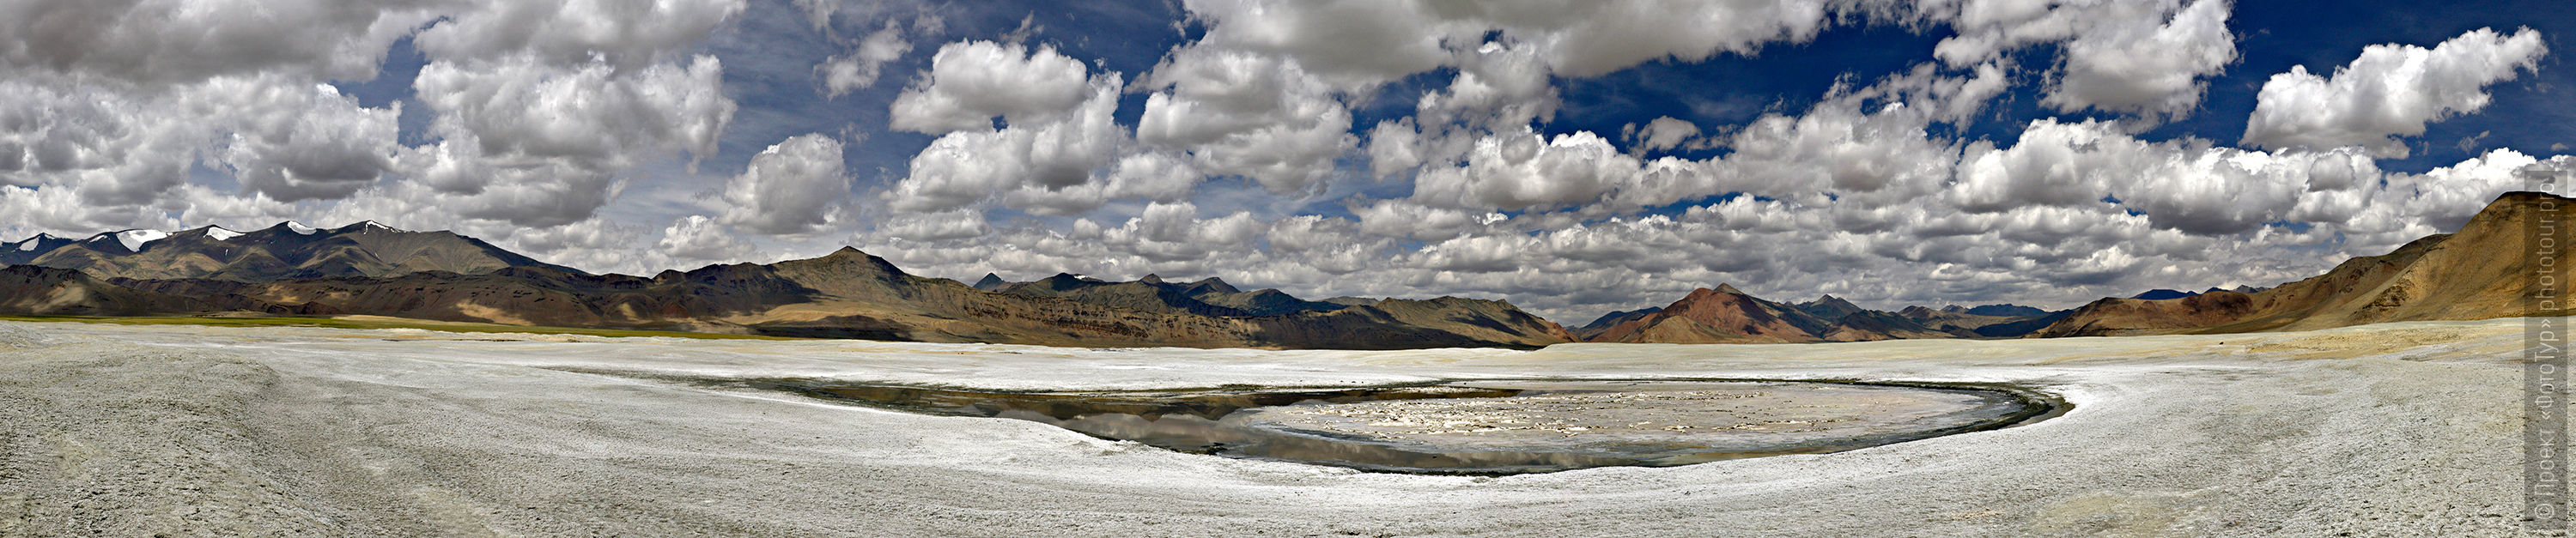 Salt flats of Lake Tso Kar, Ladakh. Expedition Tibet Lake-2: Pangong, Tso Moriri, Tso Kar, Tso Startsapak, Leh-Manali highway.